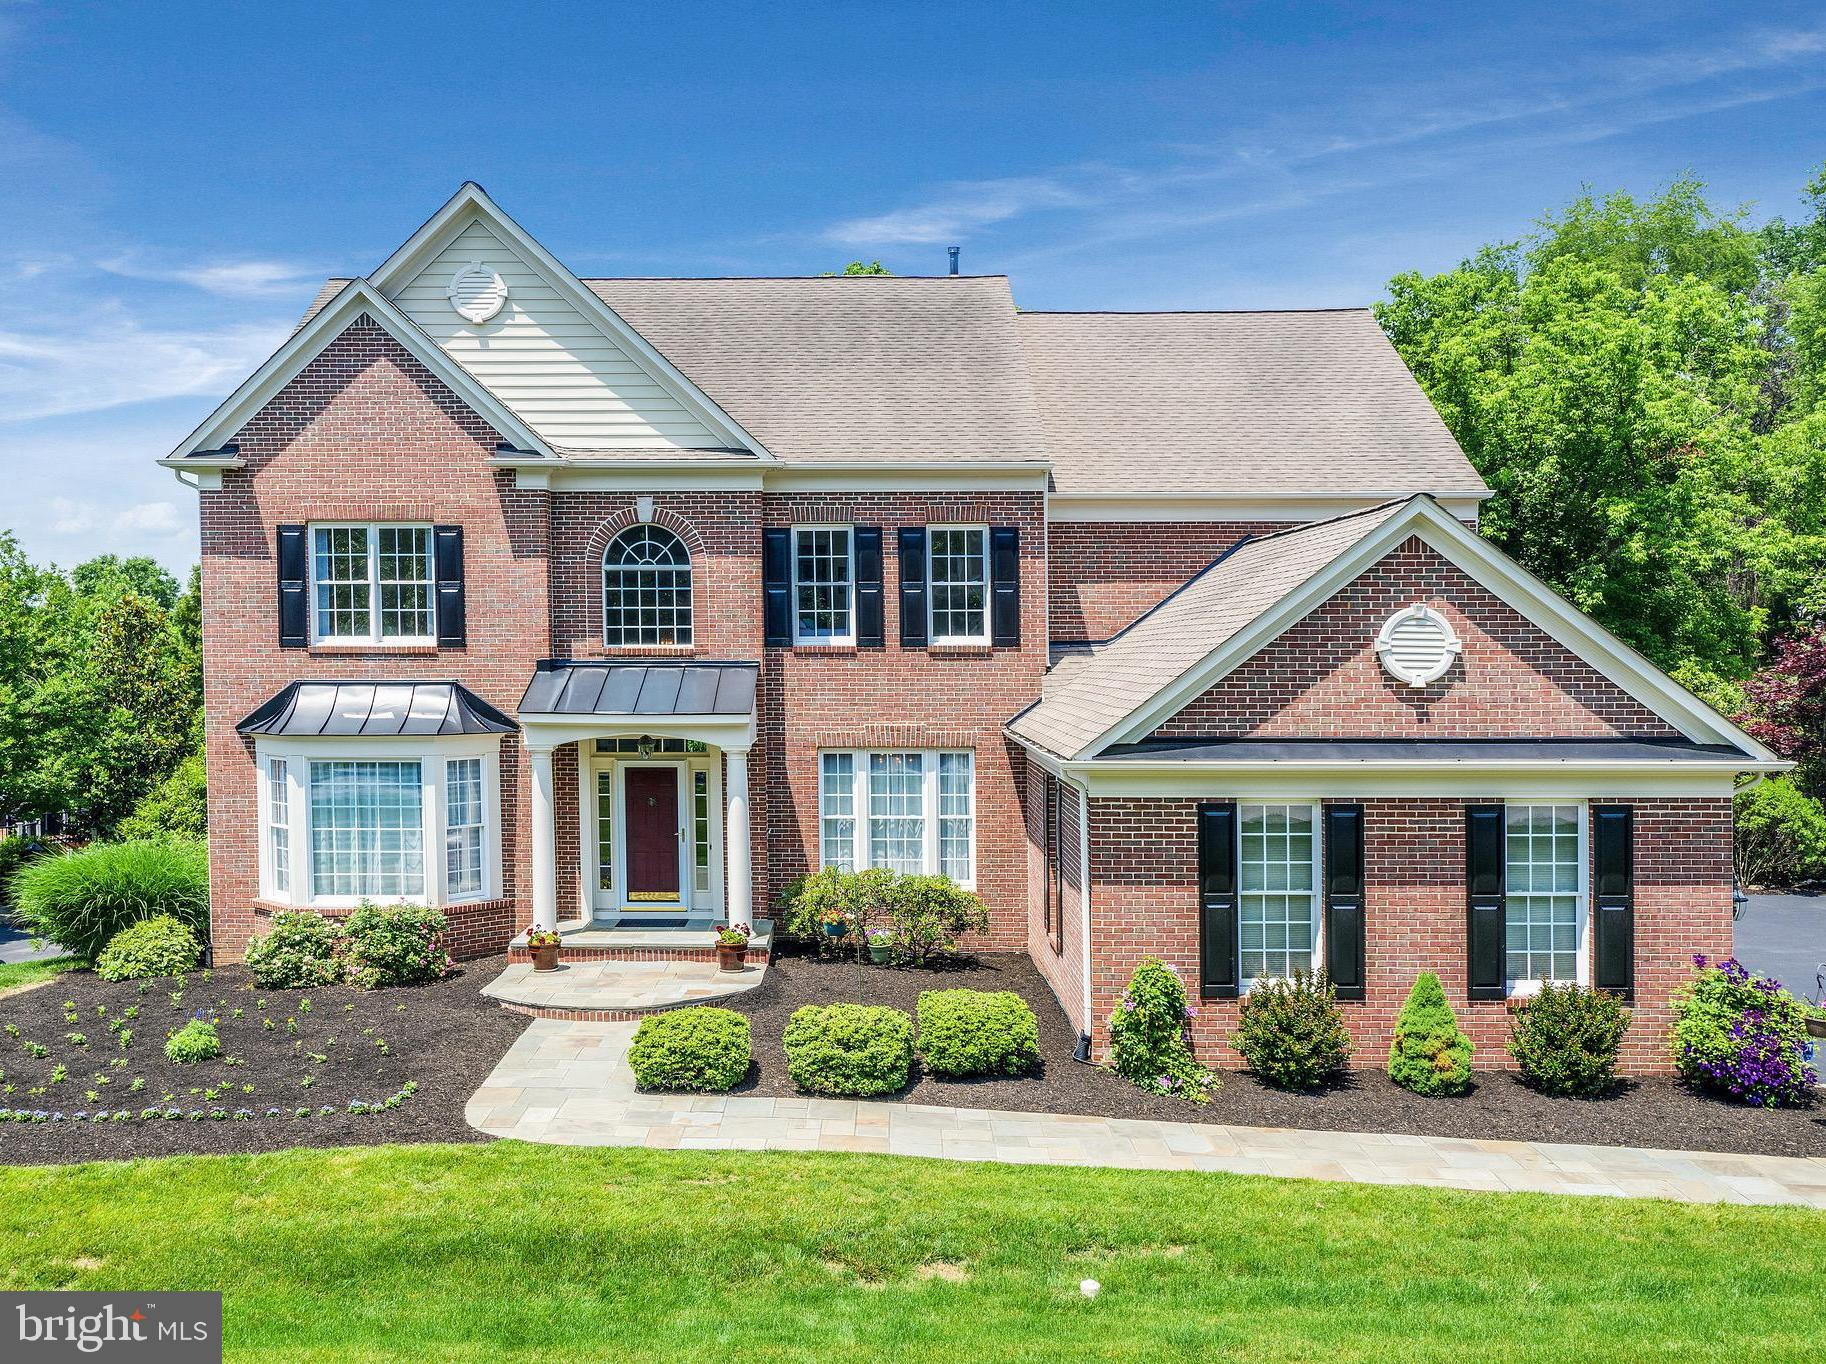 Offer Received.  Please schedule a showing by the end of day 6/18. A unique property like this does not come on the market often. Are you looking for the perfect house to entertain or have fun in? Look no further. This property is situated next to open space in East Bradford Township. This Home boasts 5 Bedrooms, 4.5 Baths, an expansive Kitchen Island, a huge Deck overlooking open space, a massive wet bar, a wine cellar that holds 1,400 bottles, a firepit, waterfall and more. Entering the house brings you to a formal Living Room with a formal Dining Room with Crown Molding and Wainscoting. The gourmet kitchen has an expansive granite Kitchen Island with a gas burner stove. The Open Concept Kitchen overlooks the Family Room and Florida Sun Room. Also on the main level is an office overlooking the backyard oasis. Upstairs is the Owner's Suite with tray ceilings and a huge bath with a walk-in closet. There is also a room next to the Owner's Suite with a fireplace that's ideal for reading a book, turning into a nursery or using it as an extra bedroom. Also on the 2nd level is another en-suite and 2 more additional bedrooms with a Jack and Jill Full Bath between them. The fully finished basement has an 8 seat granite wet bar. Across from the bar is a huge walk-in Wine Cellar that stores up to 1,400 wine bottles! The Wine Cellar also has a tasting area after opening your new bottle. There is also an entertaining area ideal for a theater type setup. The lower level also has a Bedroom and a Full Bath with a Steam Shower. The bedroom could also be used as a gym as it is now. The backyard oasis has a pond waterfall with a firepit for those colder nights. The deck overlooks open space and often has some birds stopping by to say hello. Enjoy having a drink on the deck while hearing the soothing sound of the waterfall below. Located in the Award Winning West Chester Area School District this house is also only minutes away from downtown West Chester and overlooks the Allerton Fa